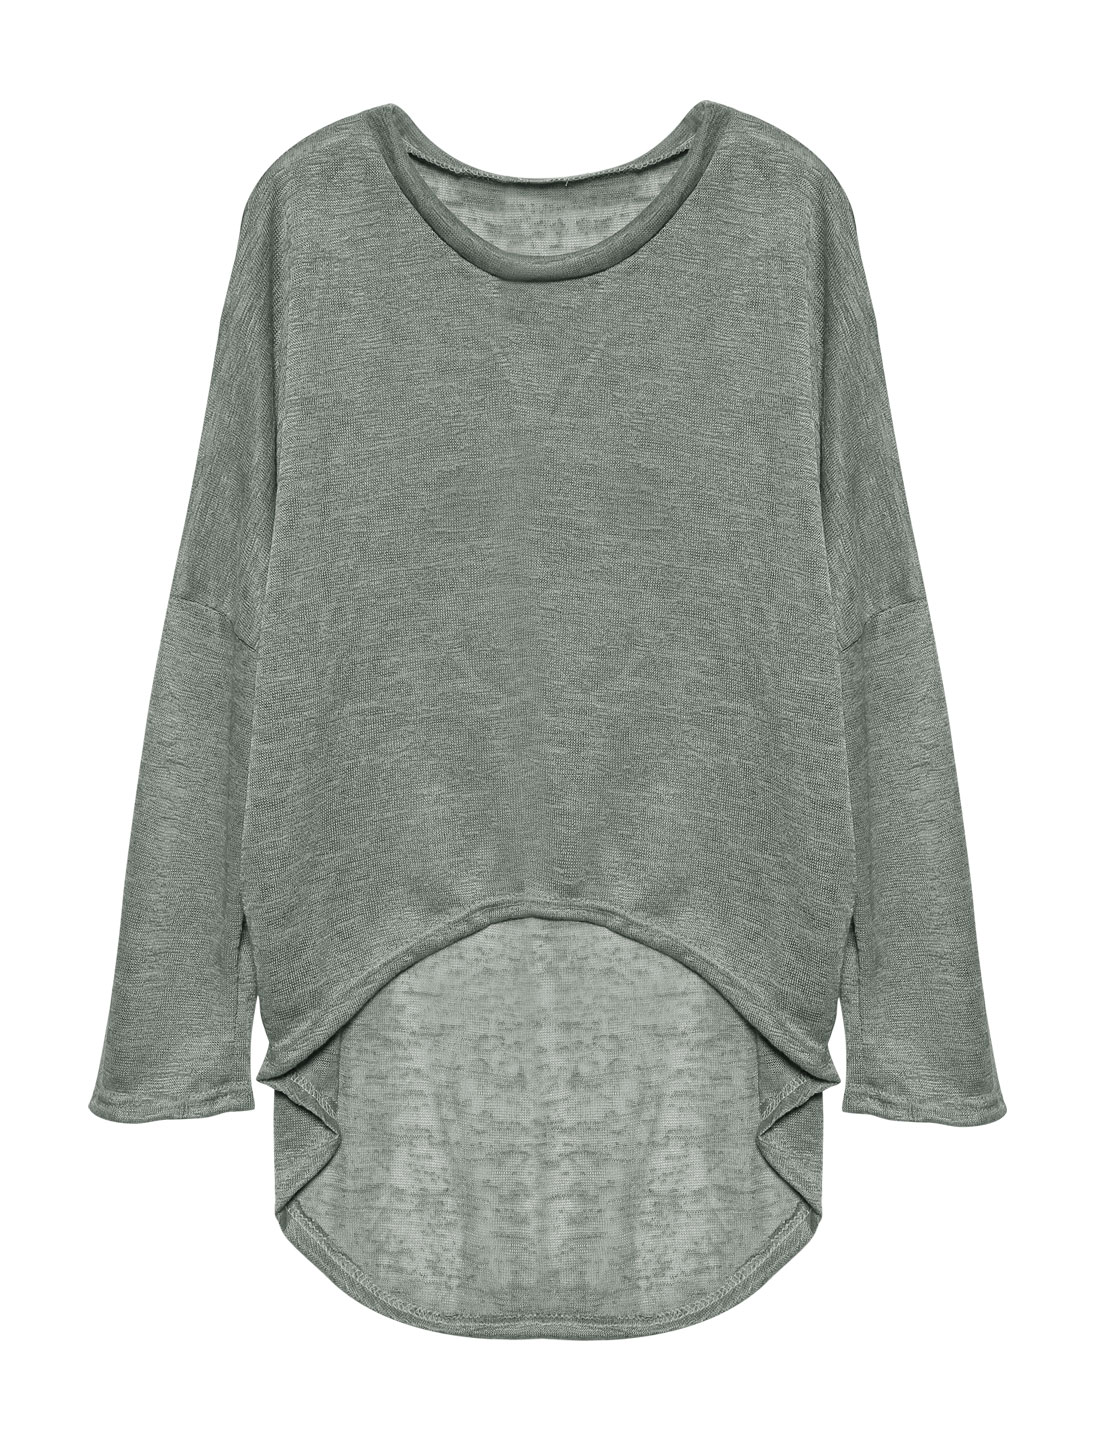 Ladies Hi-Lo See Through Loose Dolman Knit Shirt Gray S